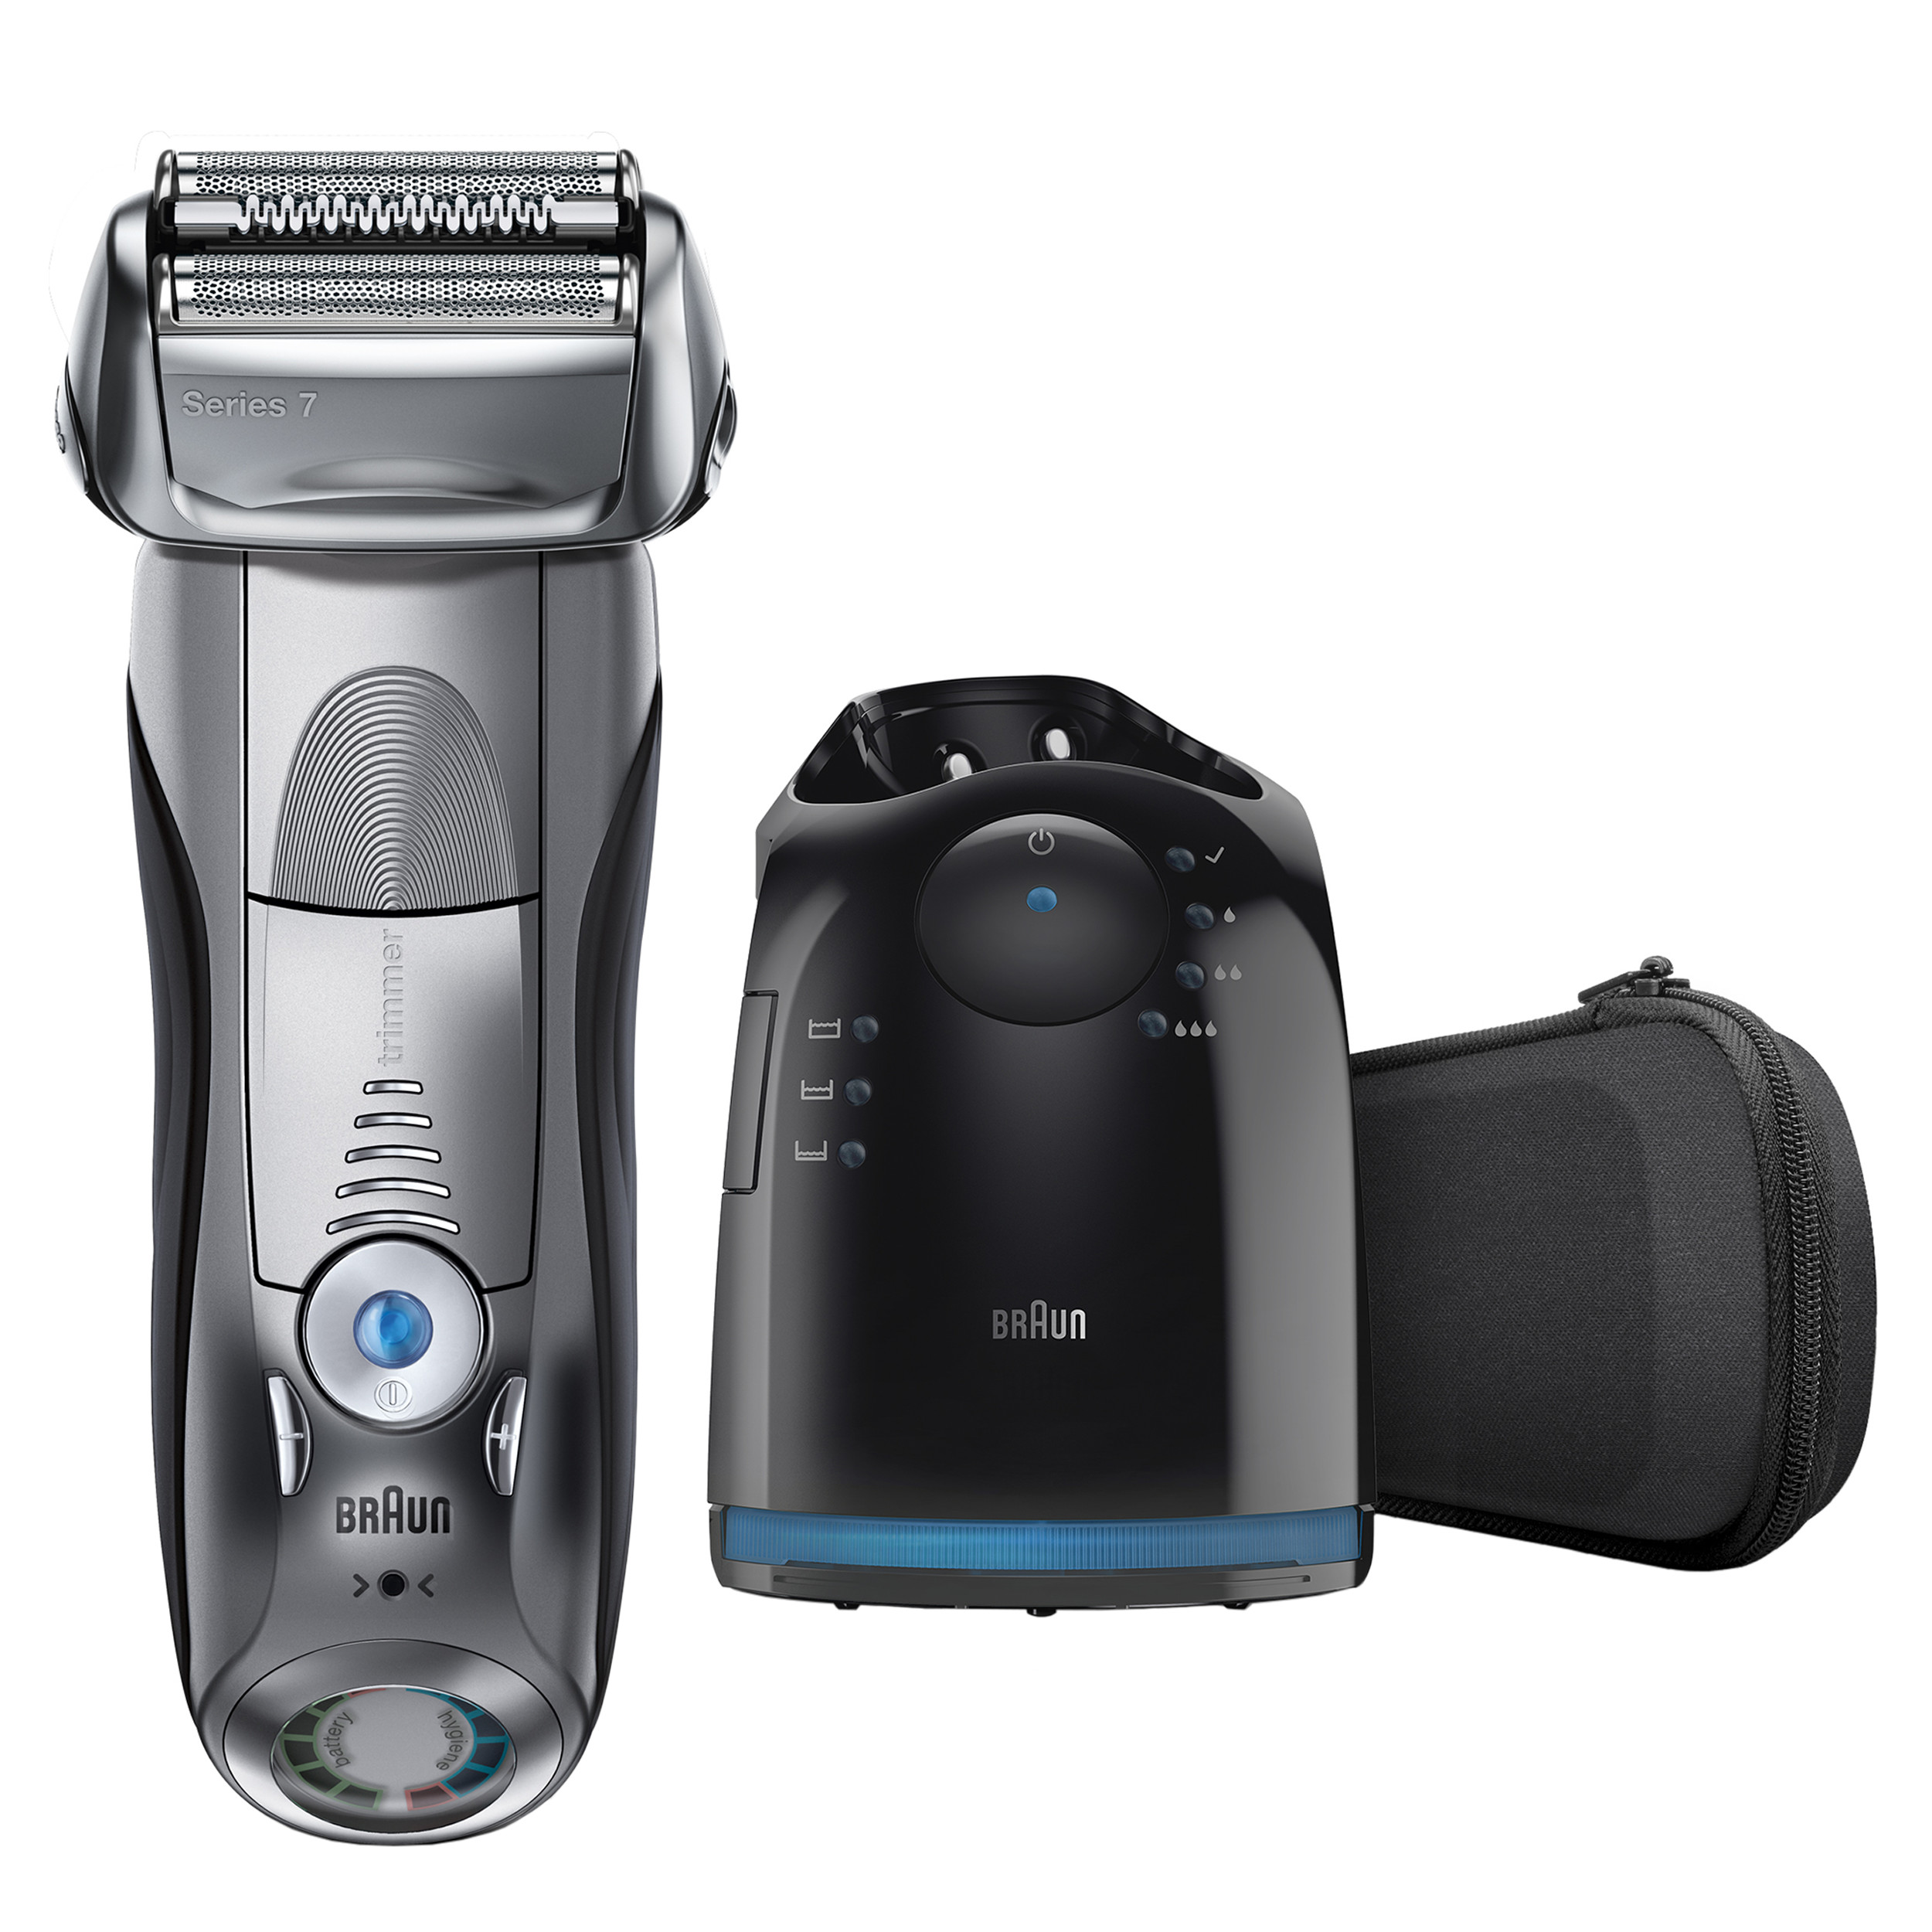 Braun Series 7 790cc Men's Electric Foil Shaver, Rechargeable and Cordless Razor with Clean & Charge Station